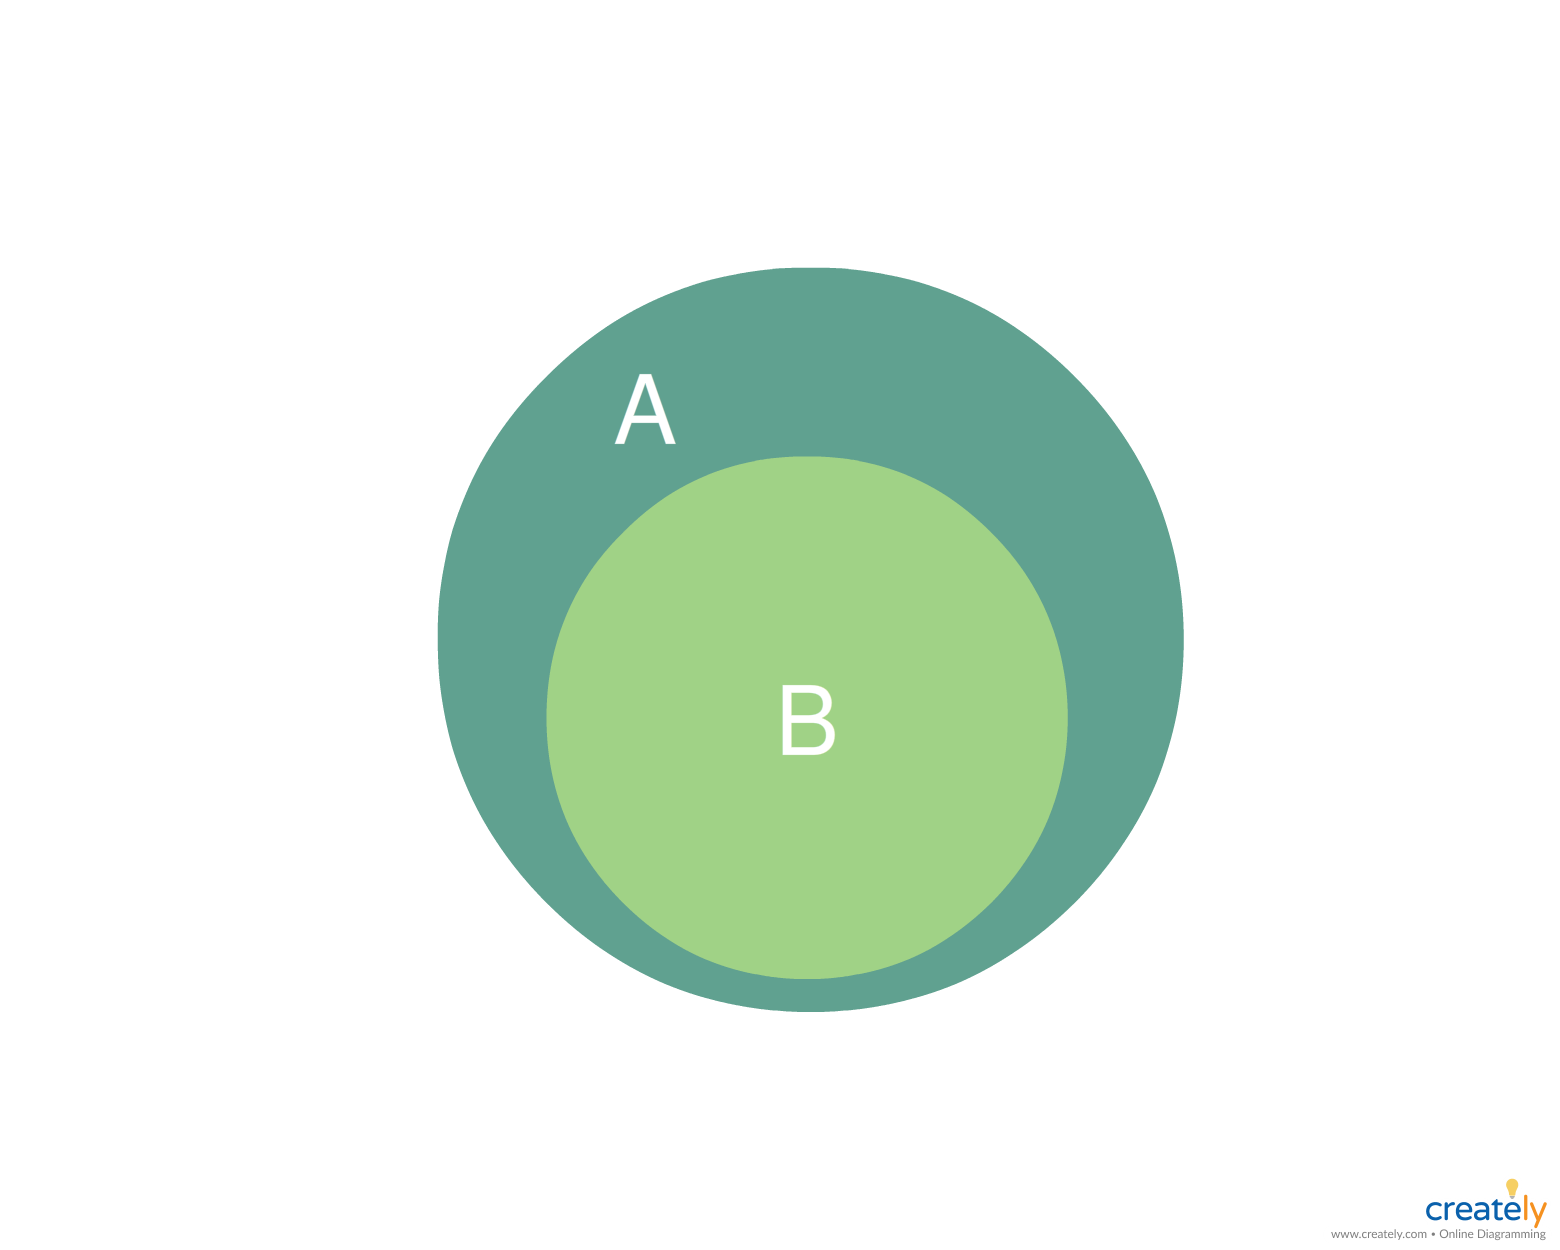 small resolution of venn diagram example showing a is a proper subset of b and conversely b is a proper super set of a you can use this as a template by clicking on the